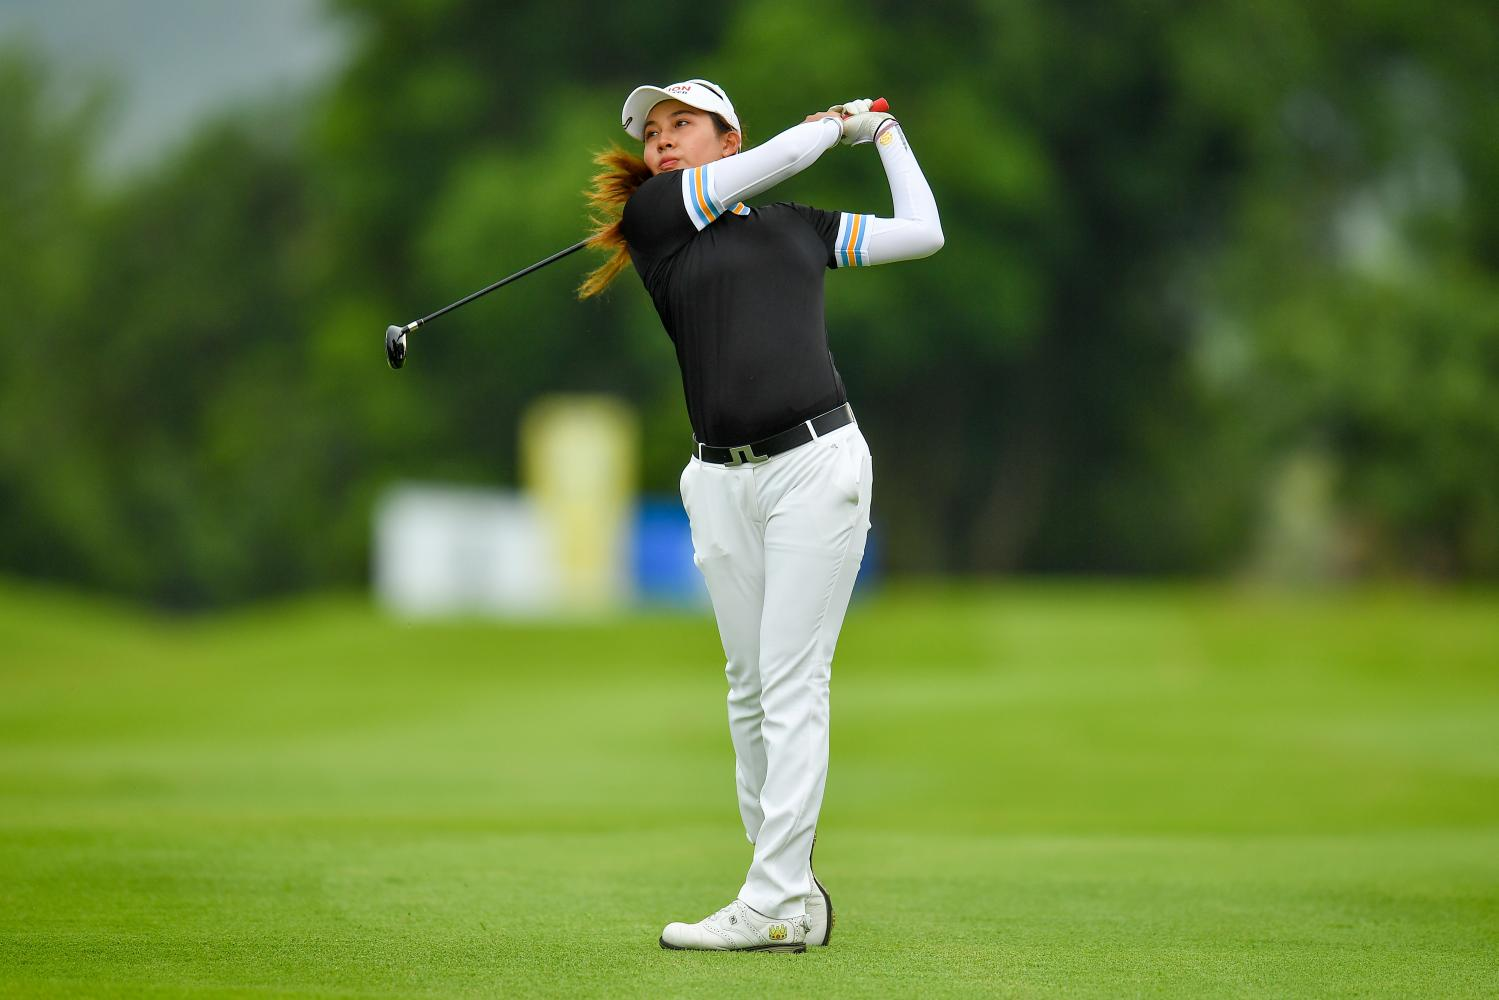 The Women's Amateur Asia Pacific (WAAP) @ Siam Country Club